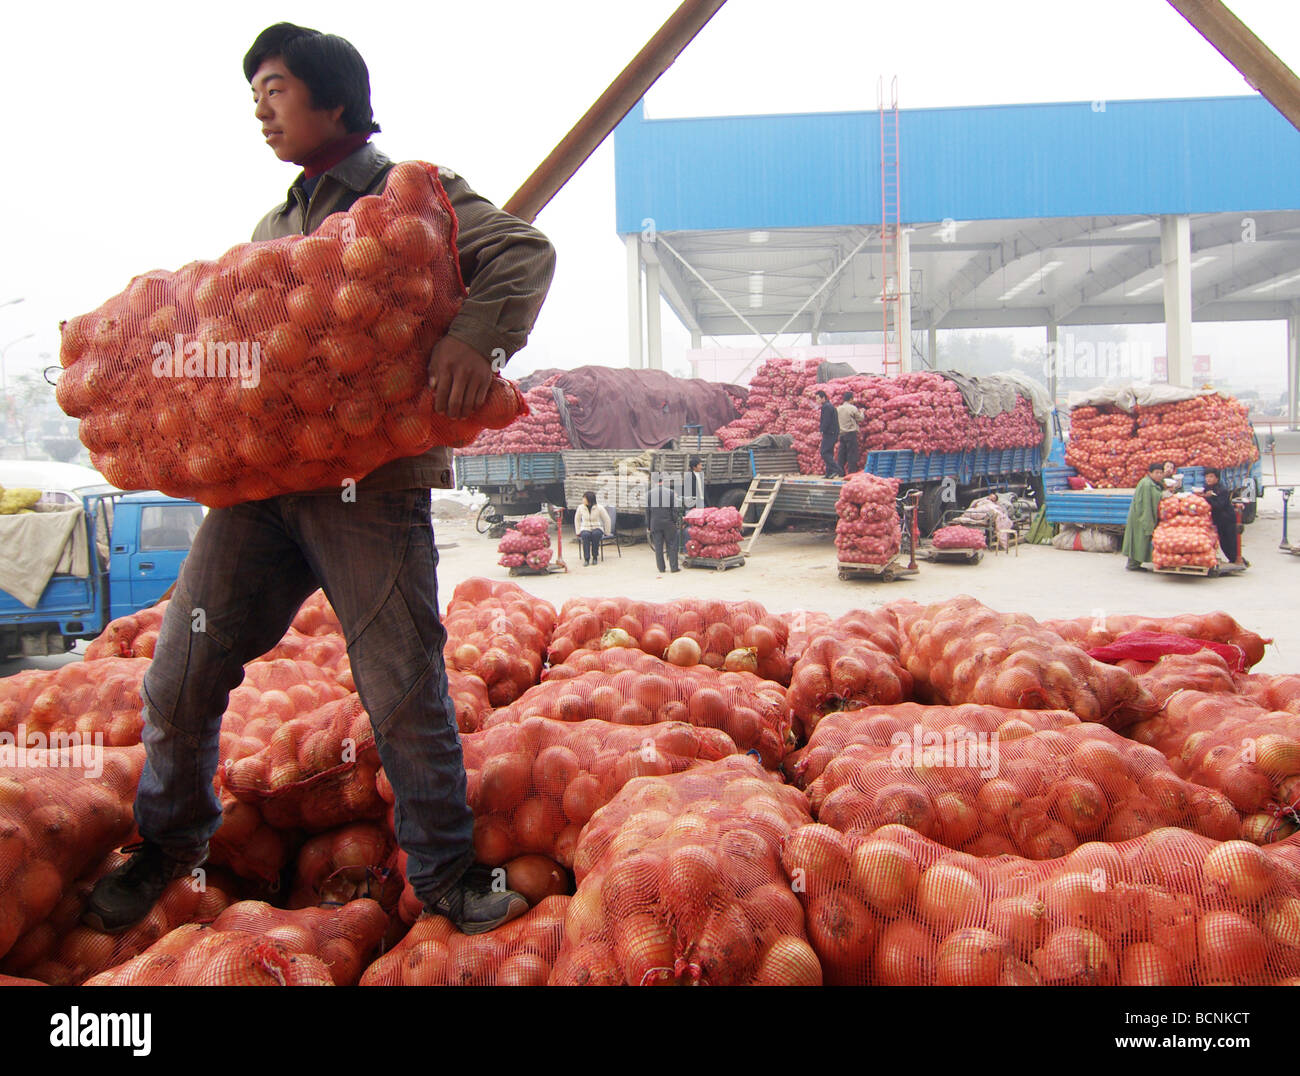 Workers loading bags of onions in a local vegetable distribution center, Beijing, China - Stock Image